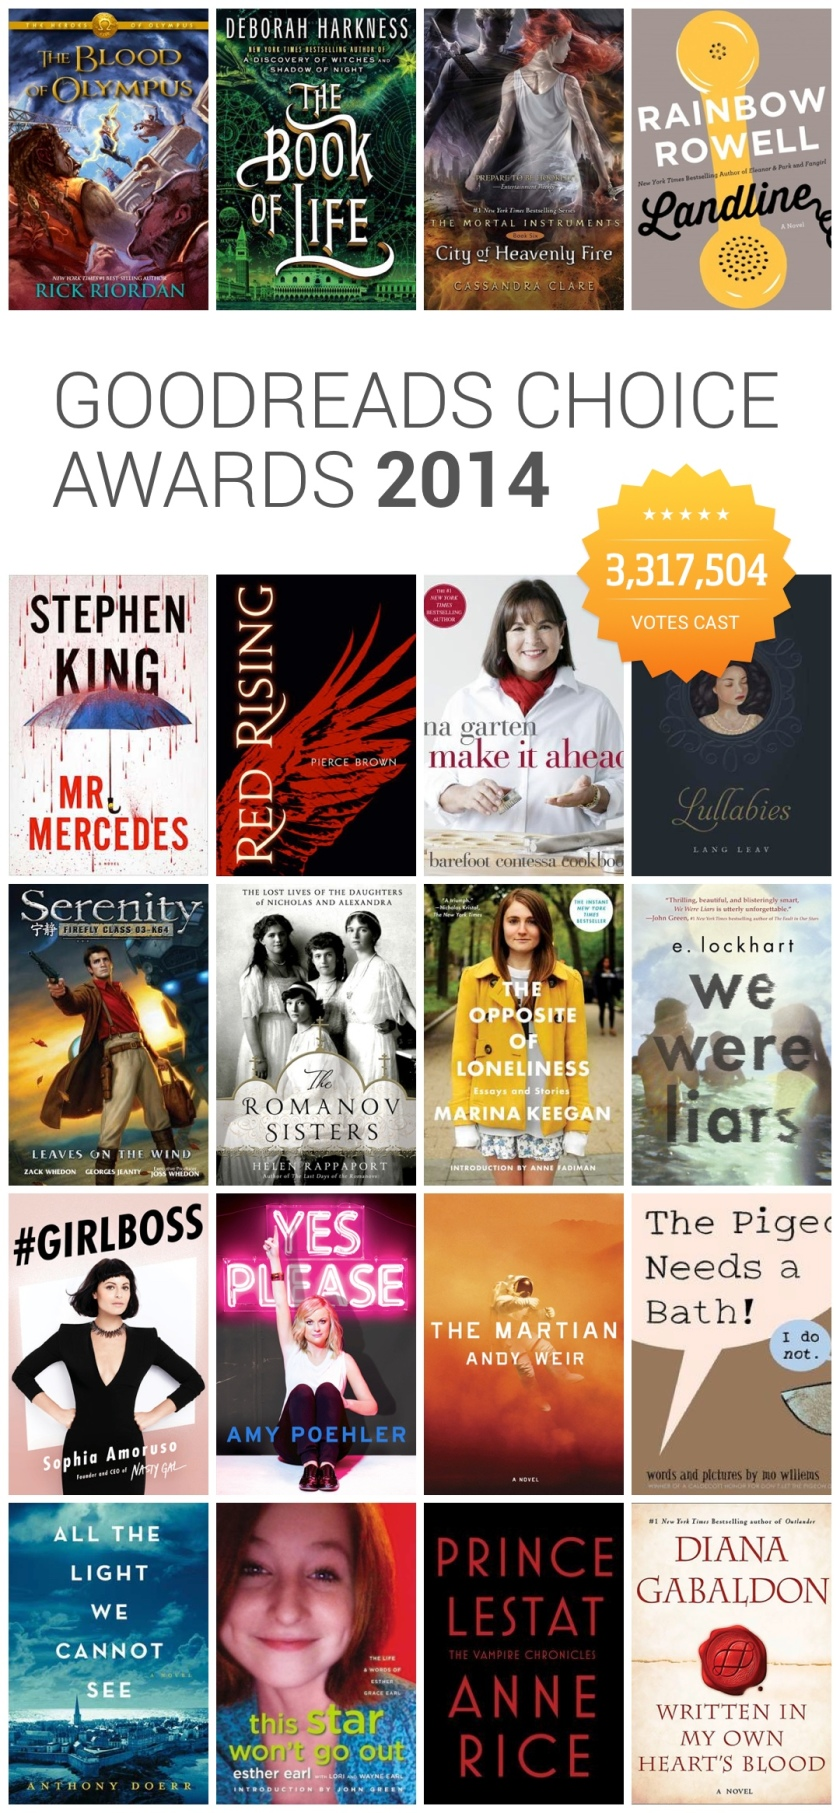 Goodreads Awards 2014 - best books of the year decided by readers #infographic